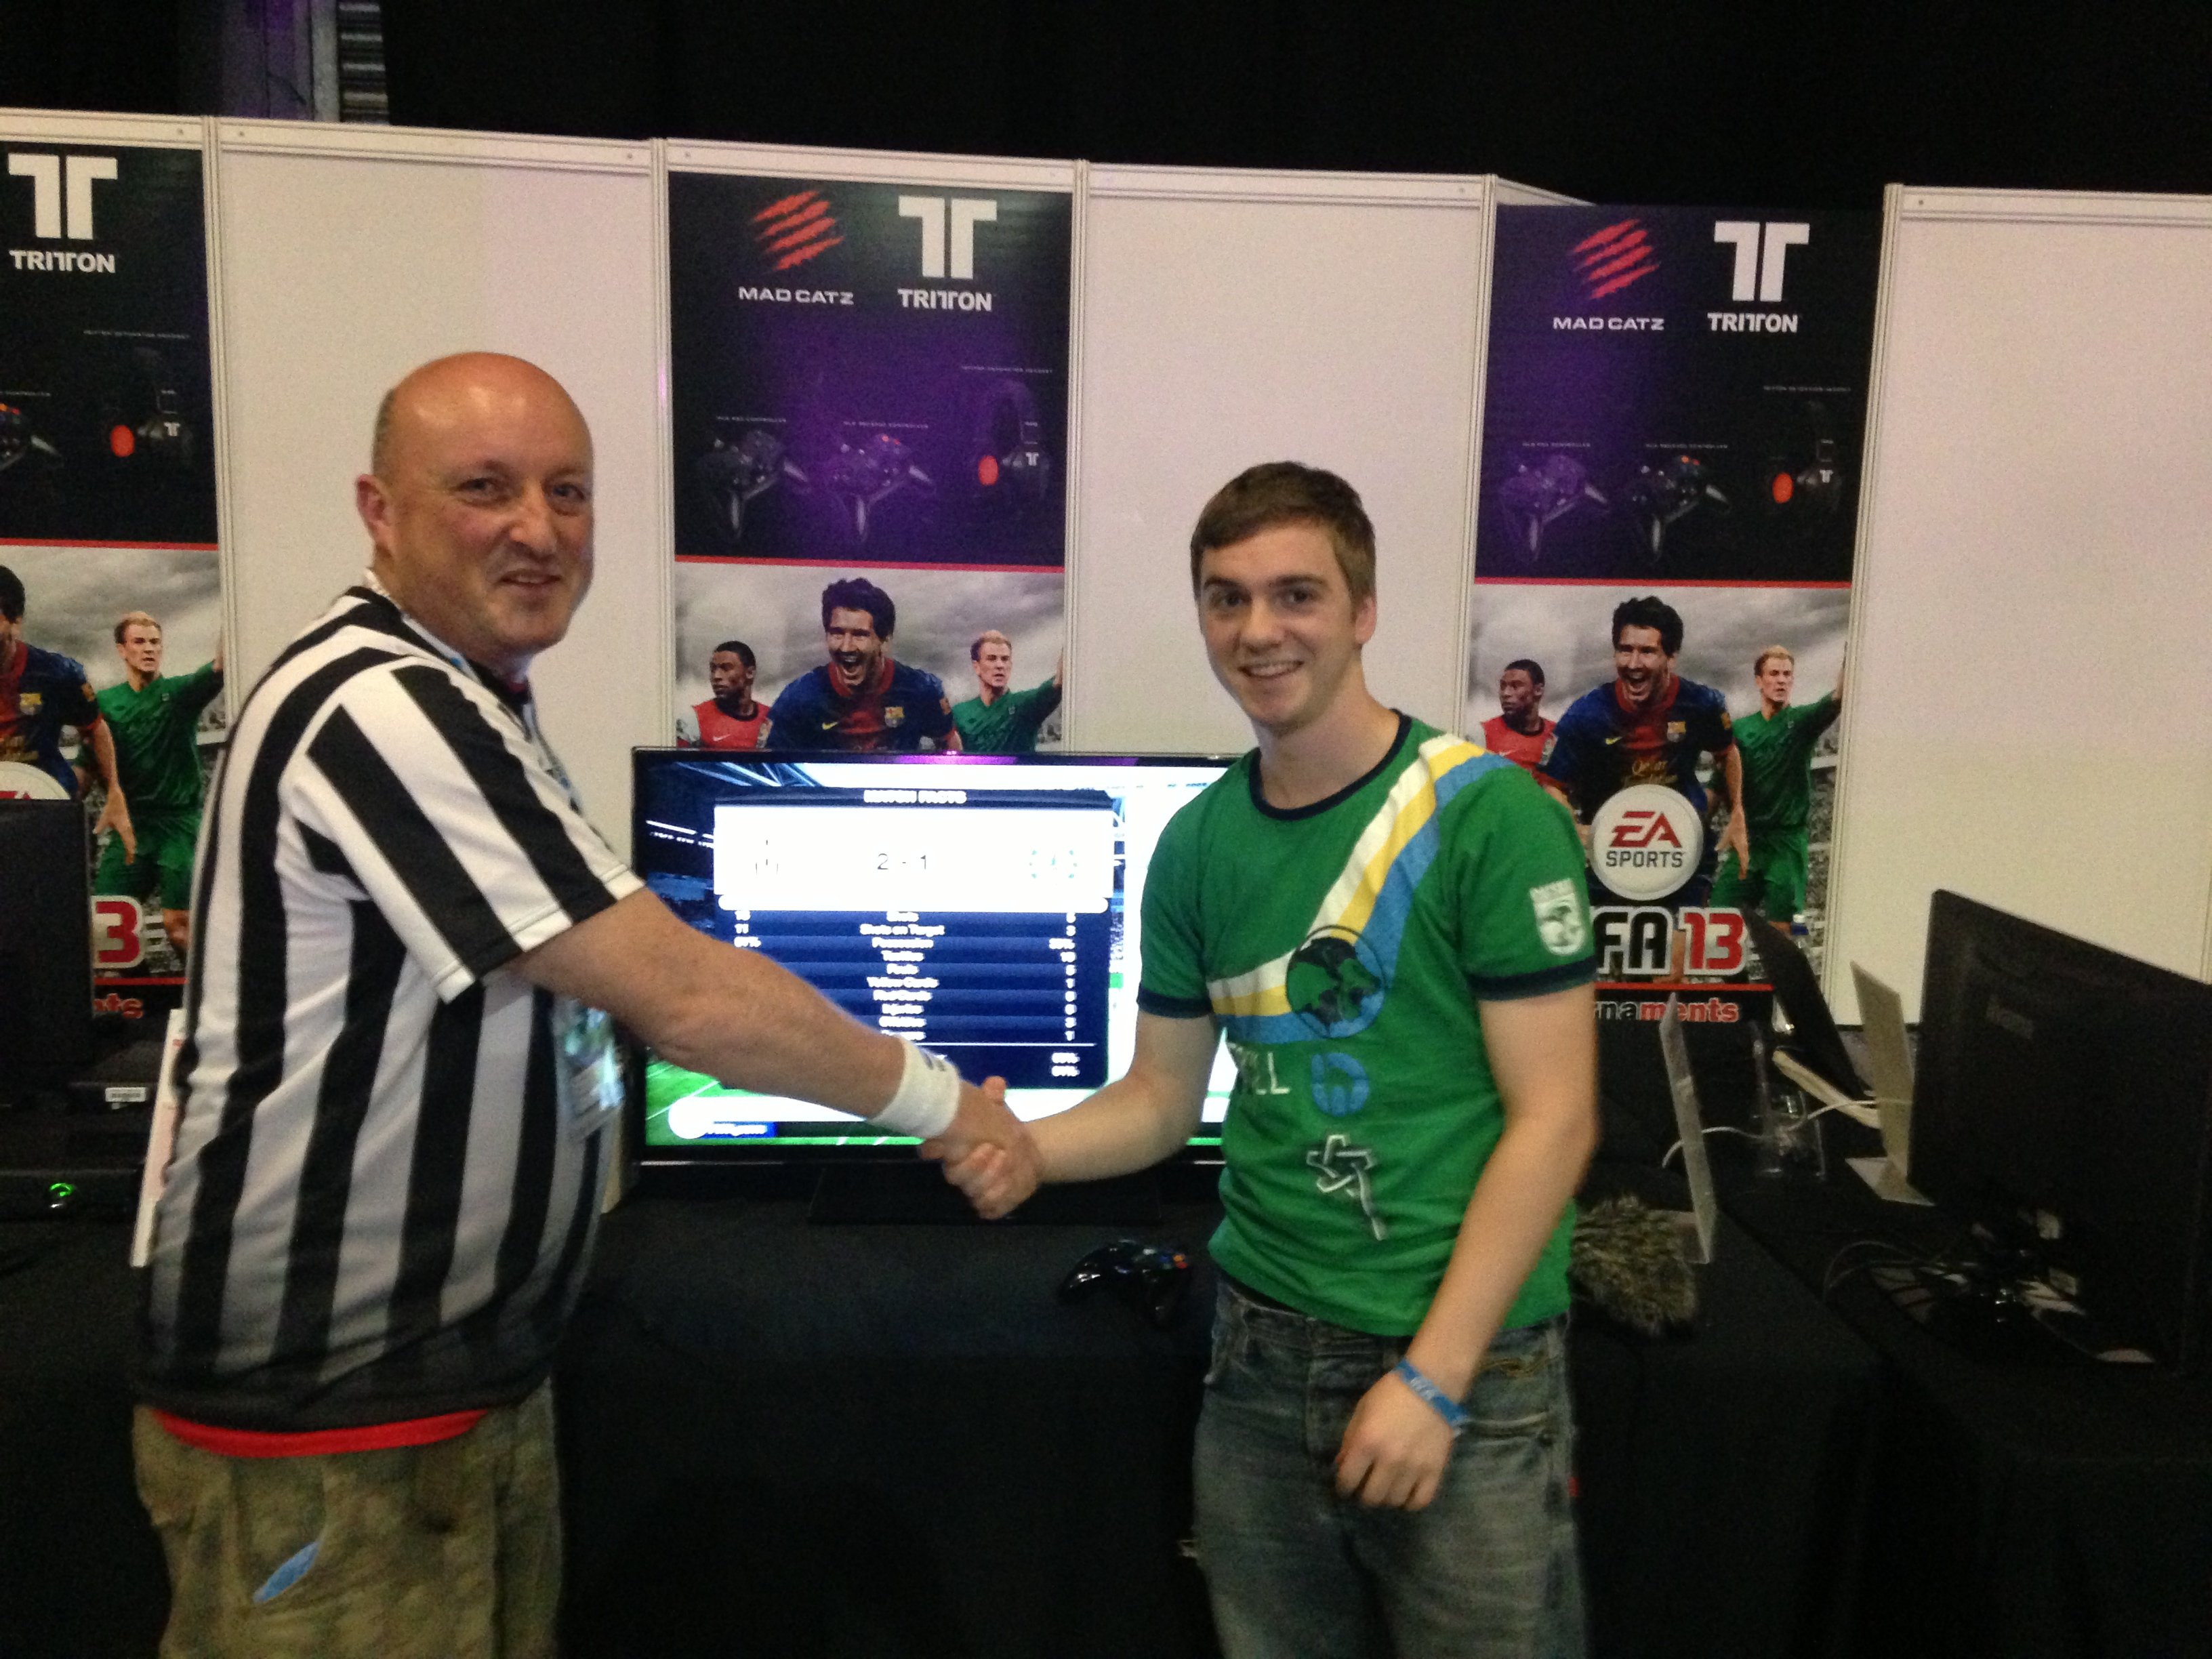 Congratulations to Joshua Wragg who is our FIFA 13 1 v 1 Fun Xbox Tournament Champion